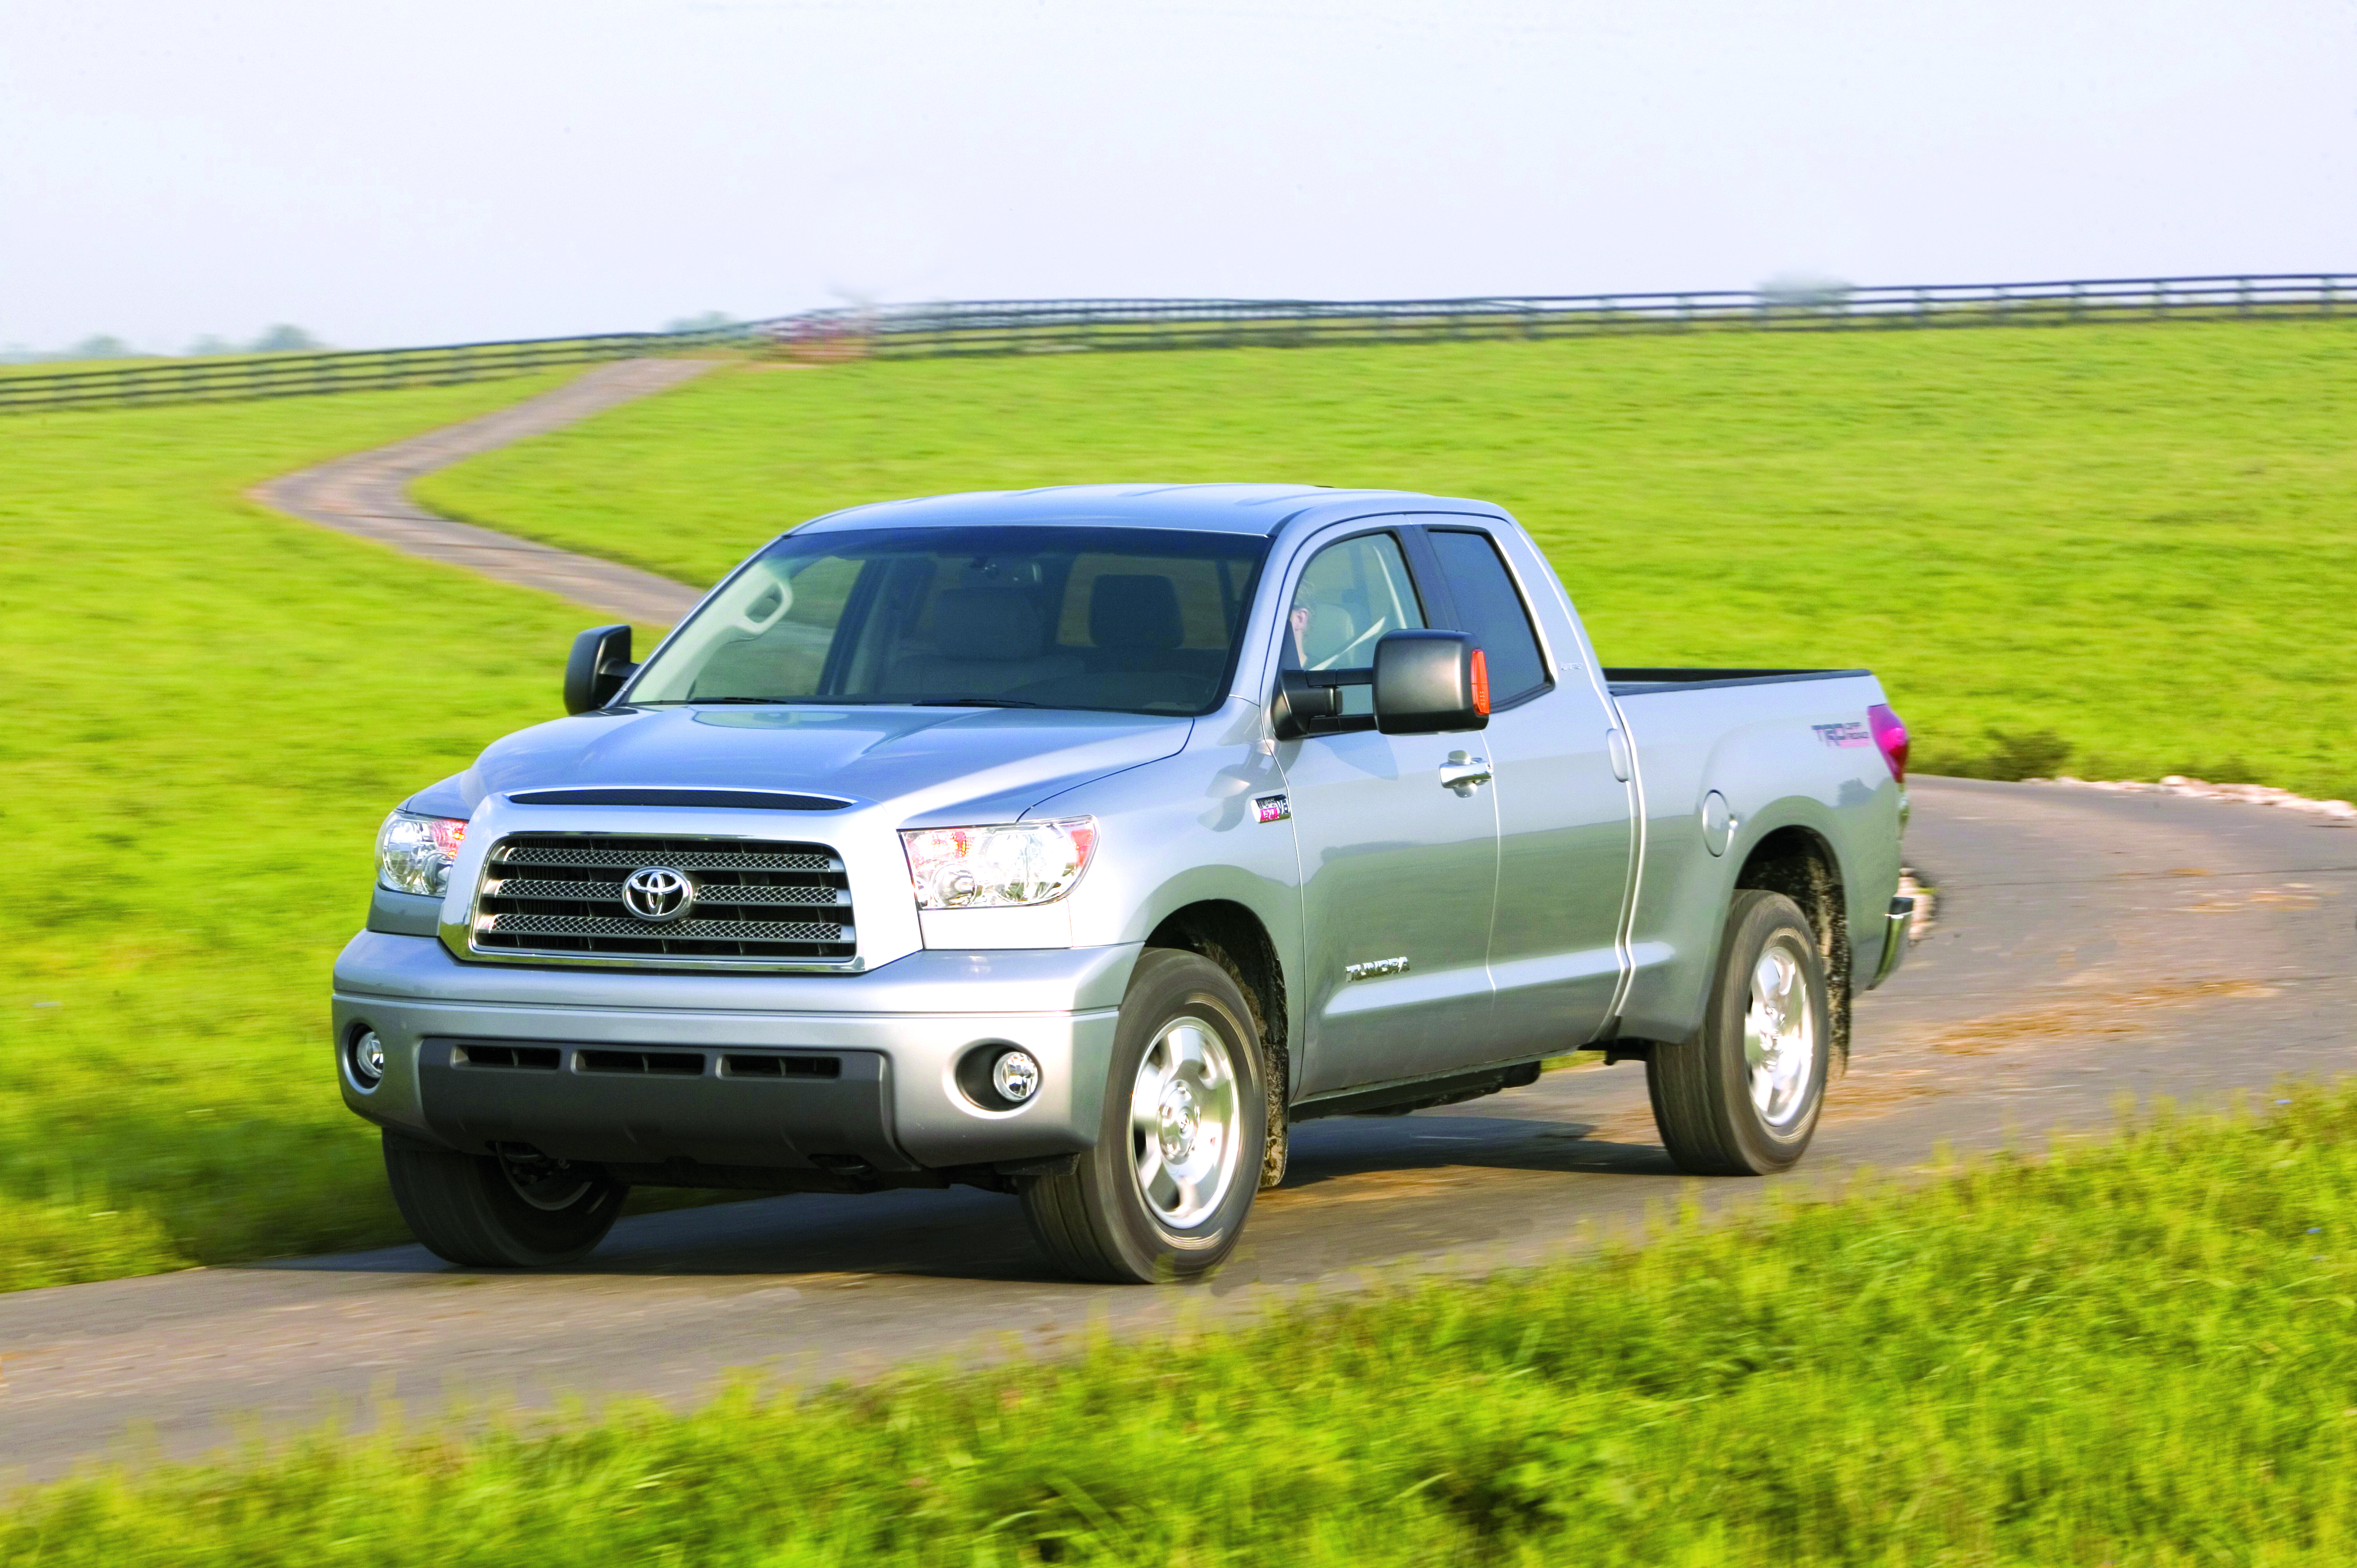 2007 Toyota Tundra Blends V-8 Power with Sport Styling